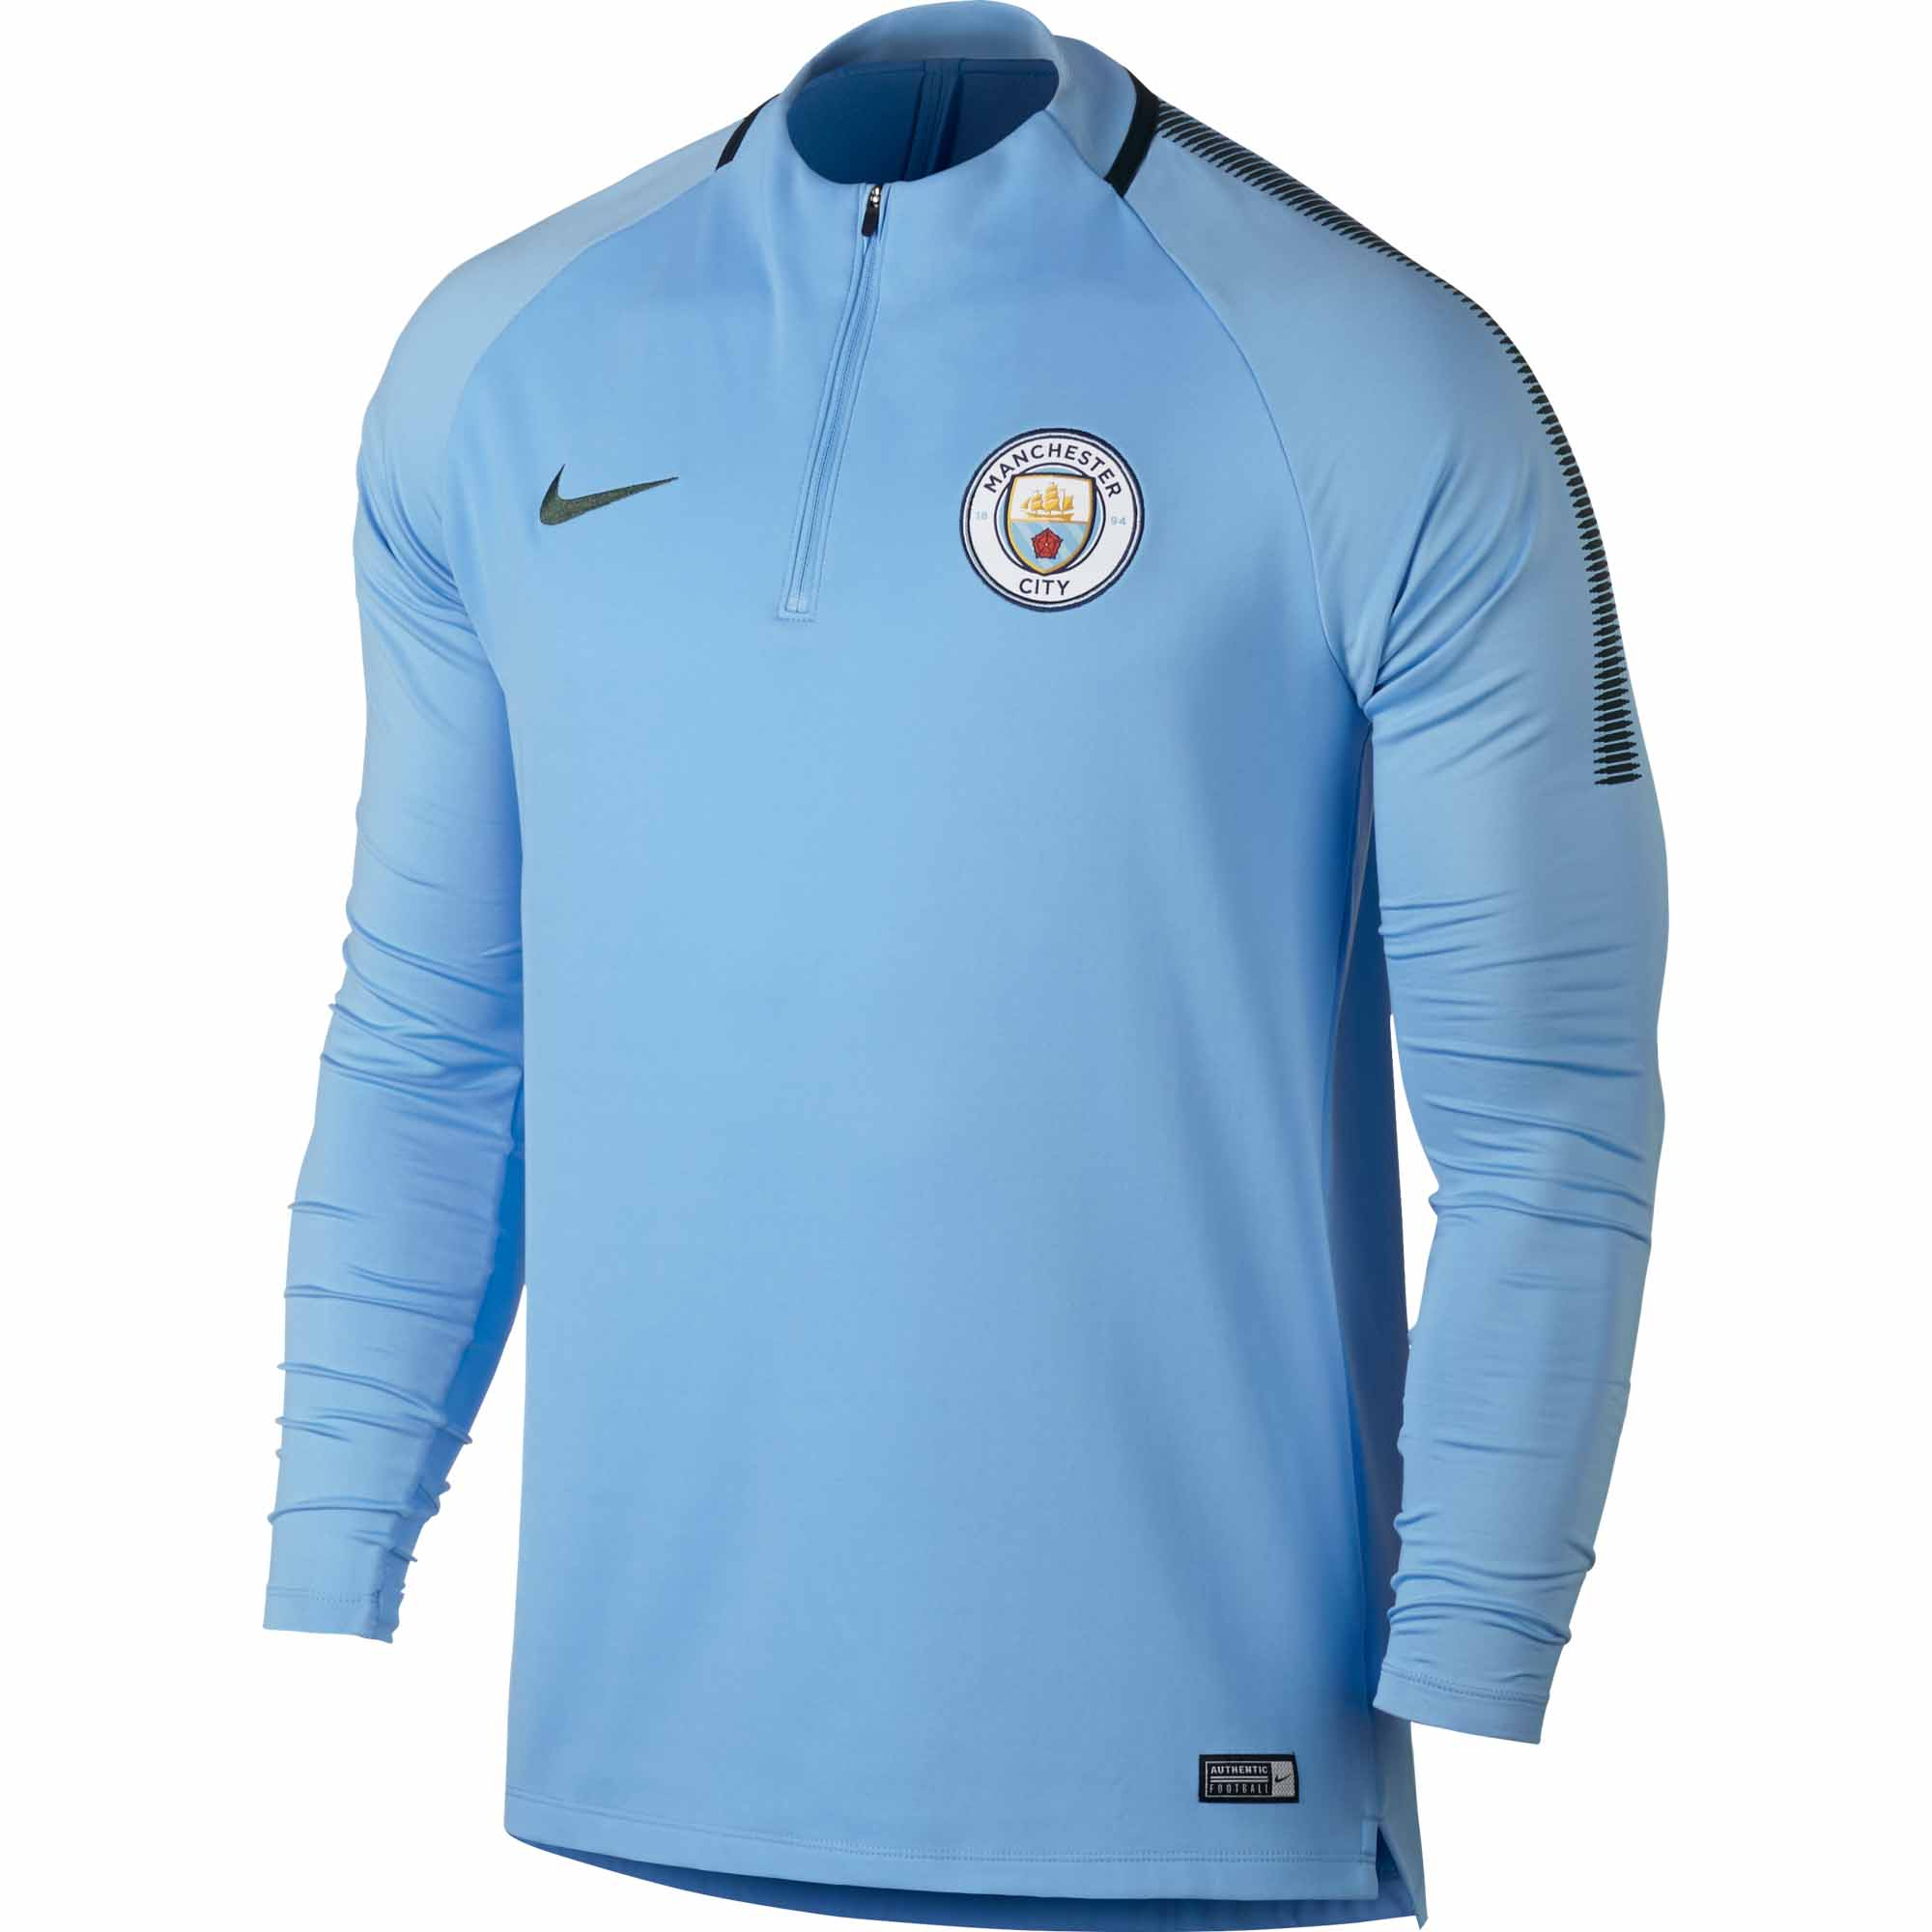 c28cb105653a Nike Manchester City Drill Top - Field Blue   Outdoor Green - Soccer ...